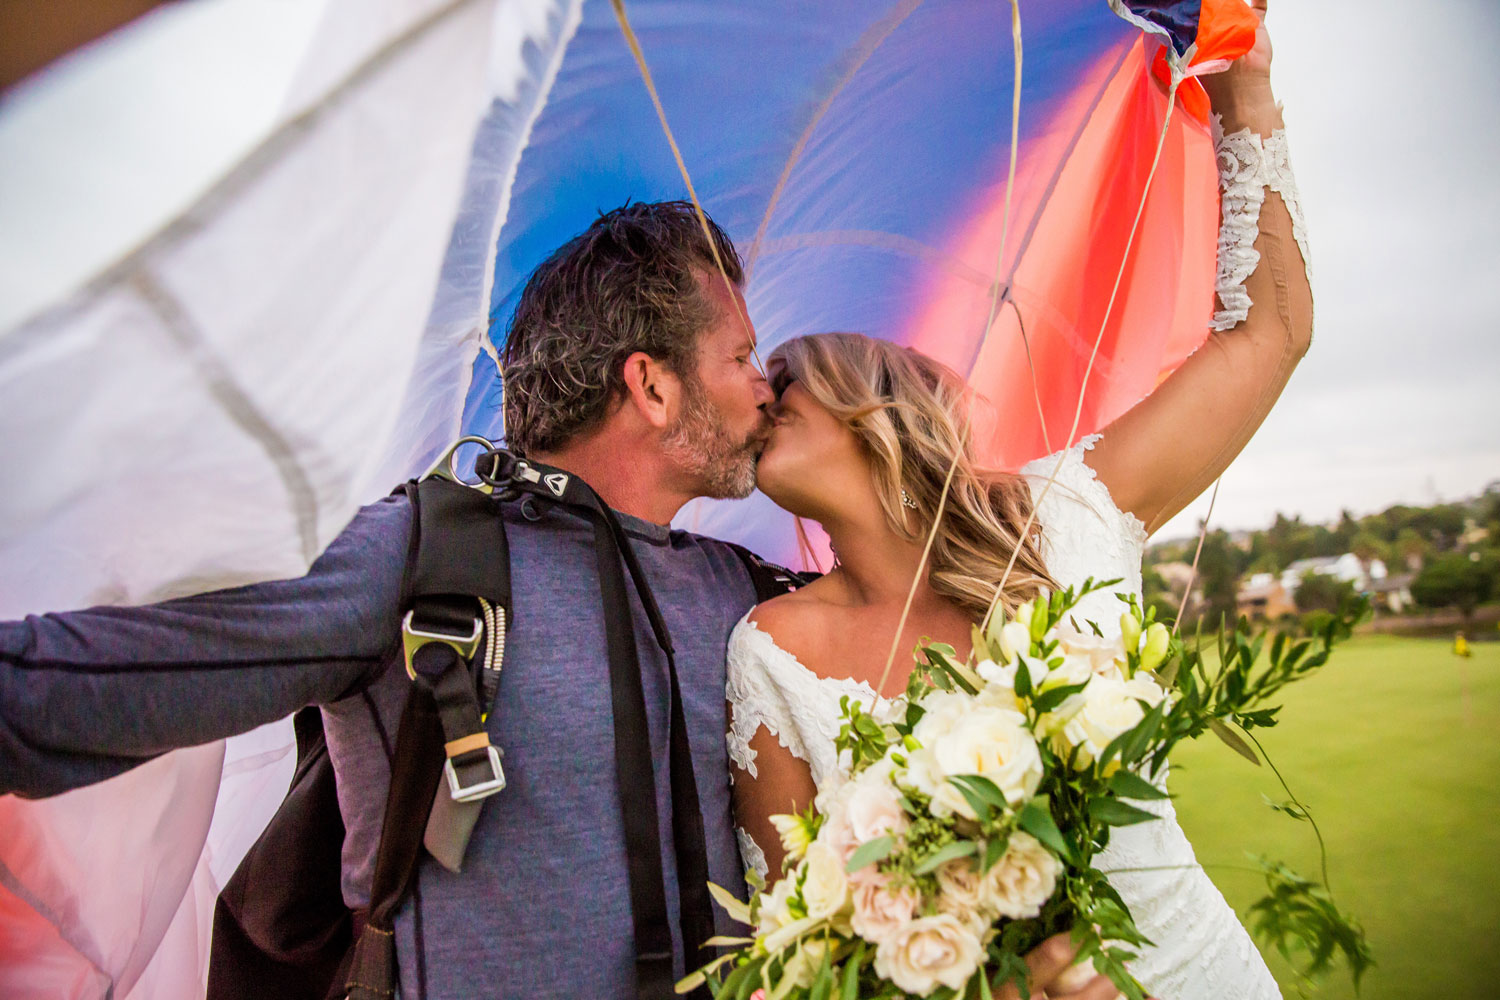 Bride and groom kiss under parachute wedding cocktail hour surprise